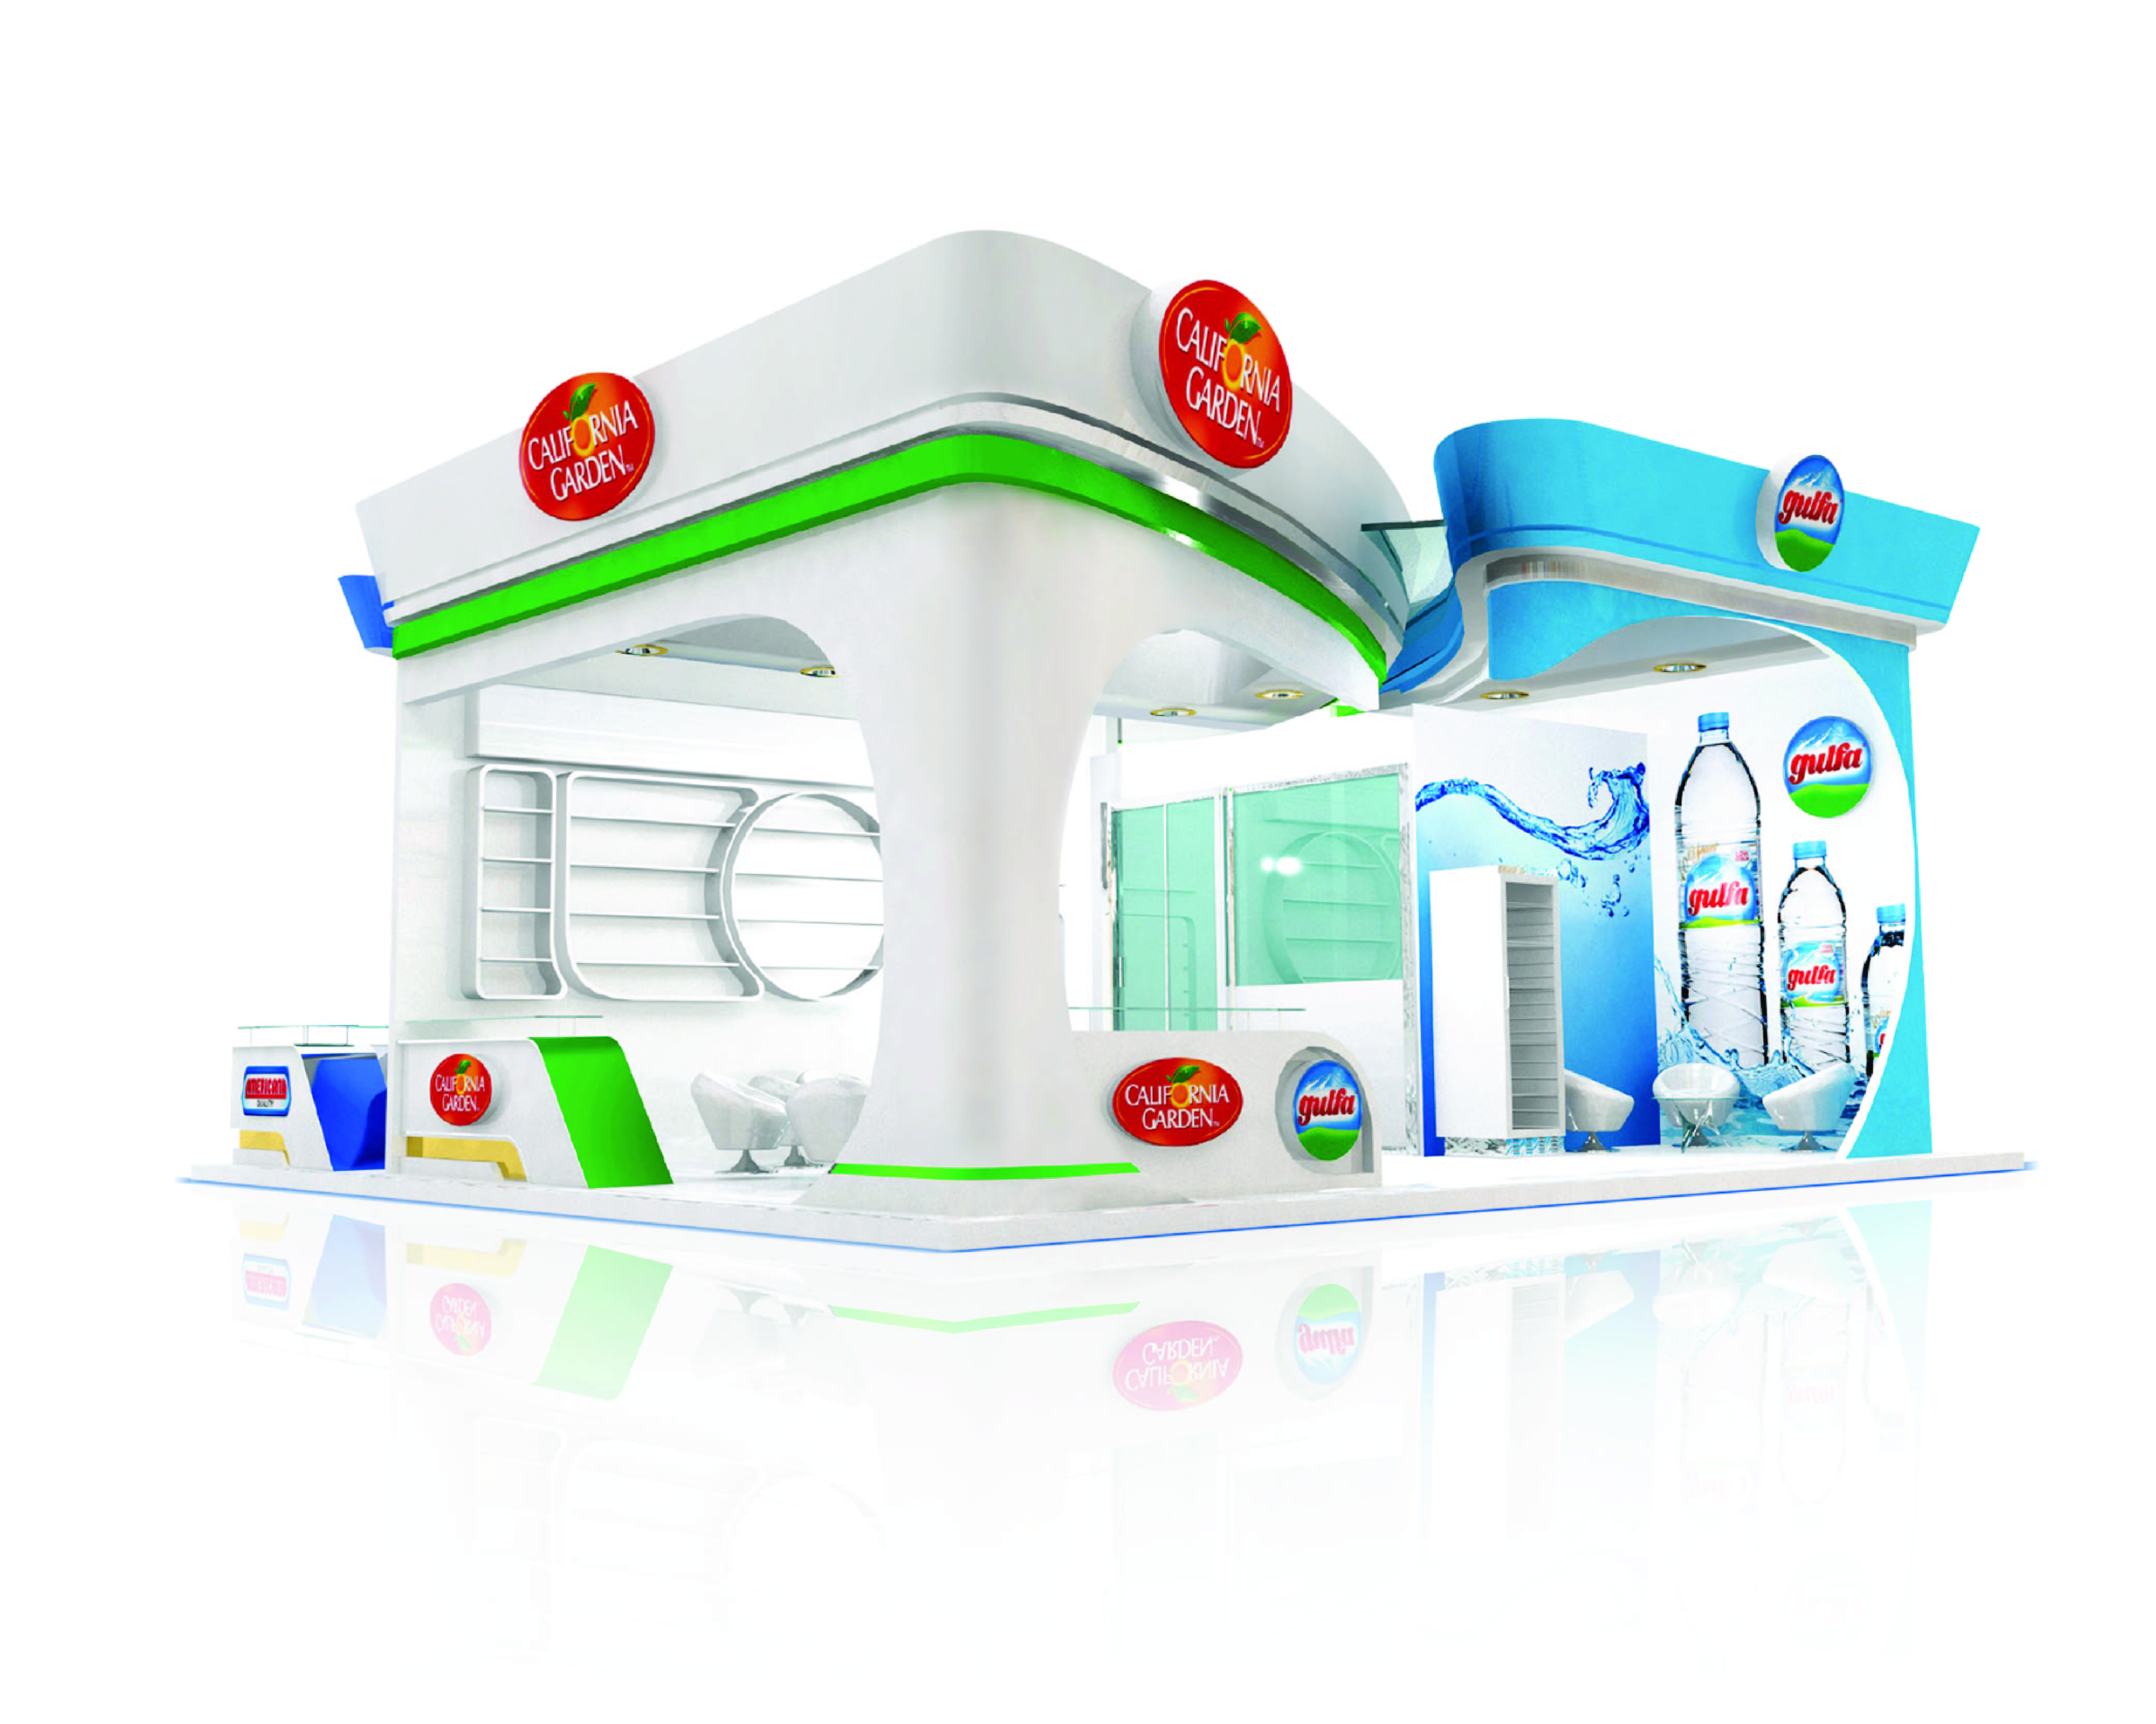 Inkpot-Advertising-Exhibition-Stand-Kiosk-Banner.png